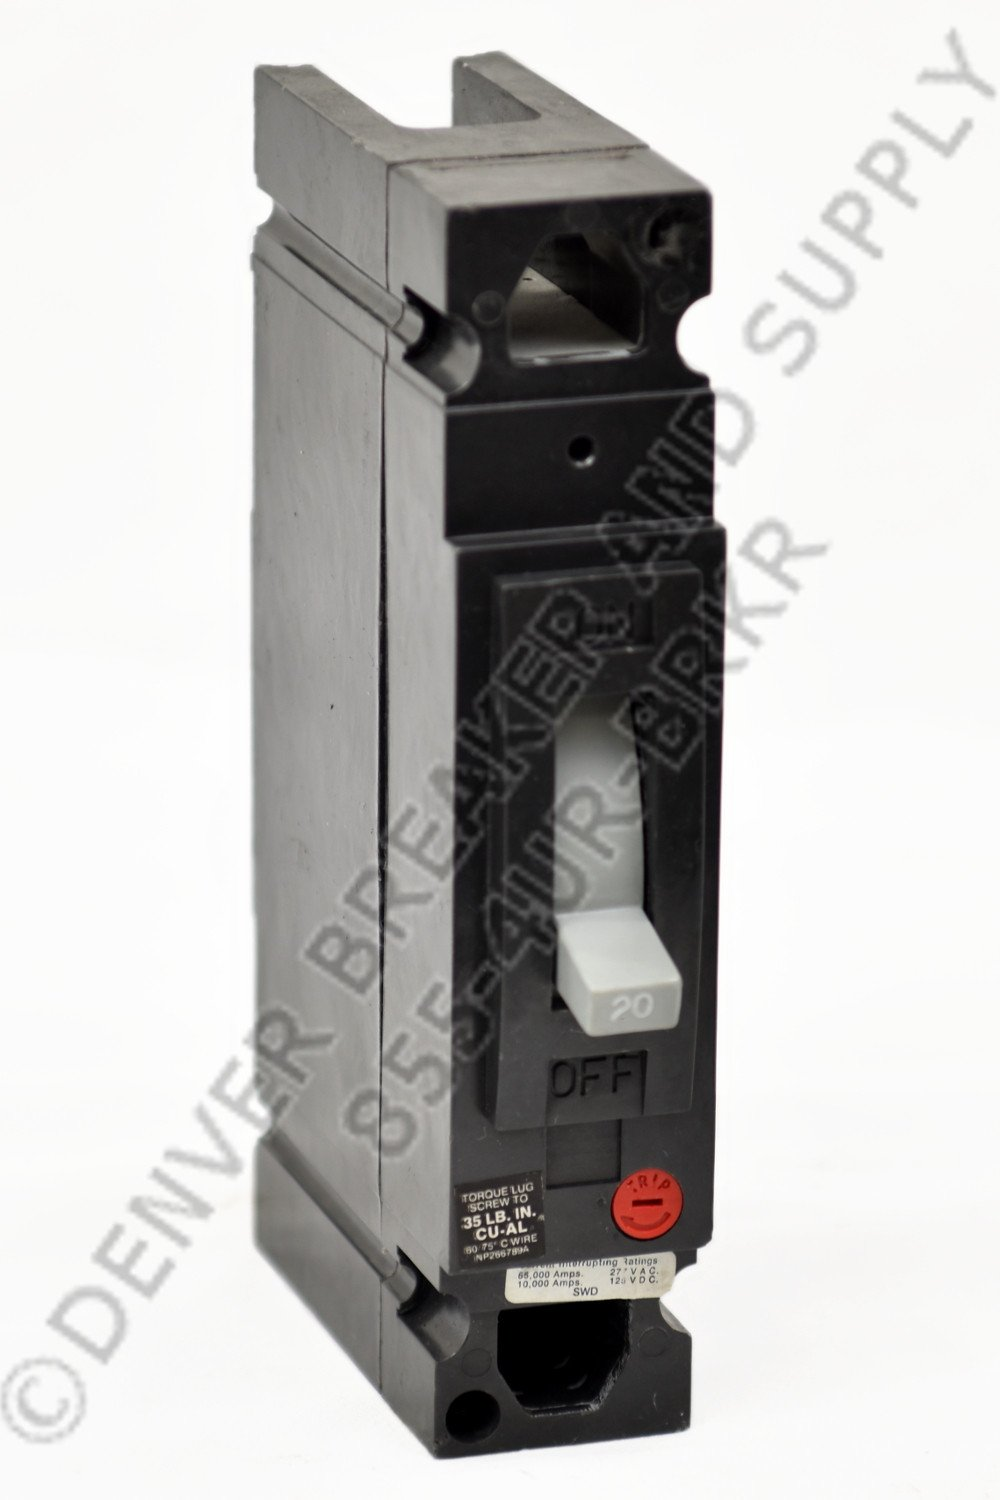 20 Amp 1 Pole Circuit Breaker GE THED113020 NEW